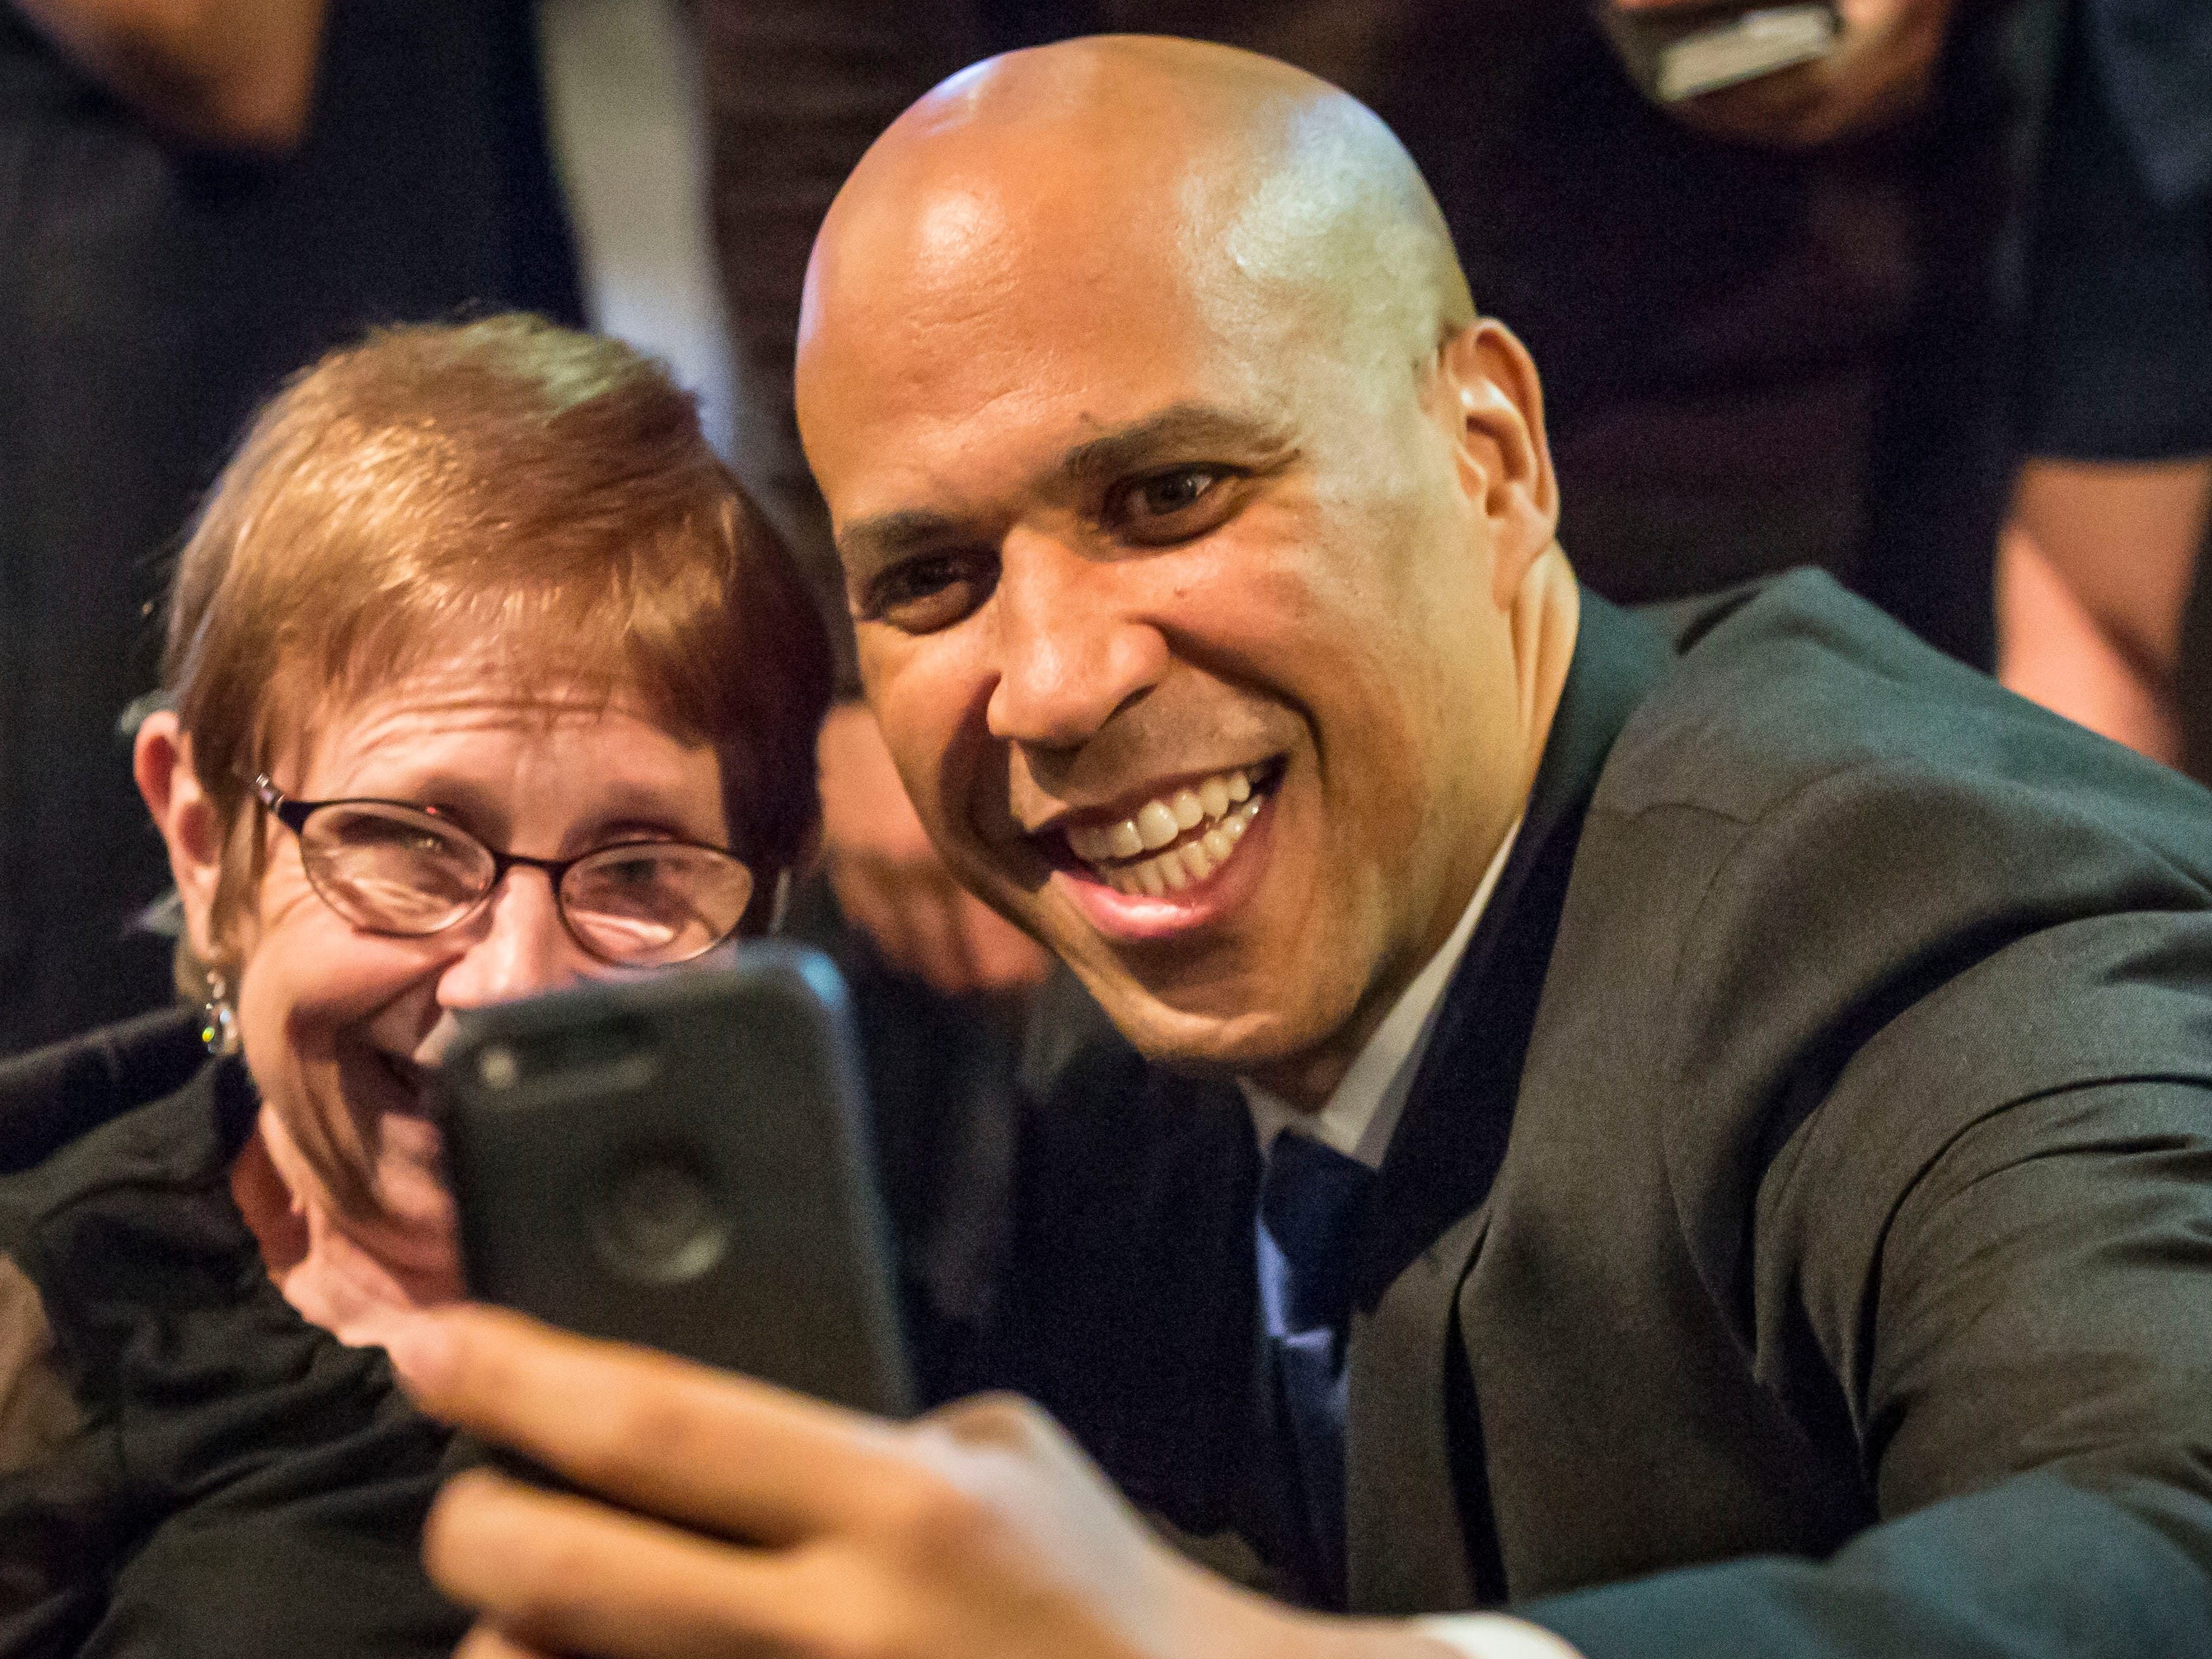 New Jersey Sen. Cory Booker takes selfies with audience members at the Iowa Democratic Party's fall gala Saturday, Oct. 6, 2018, at the Iowa Events Center in Des Moines.